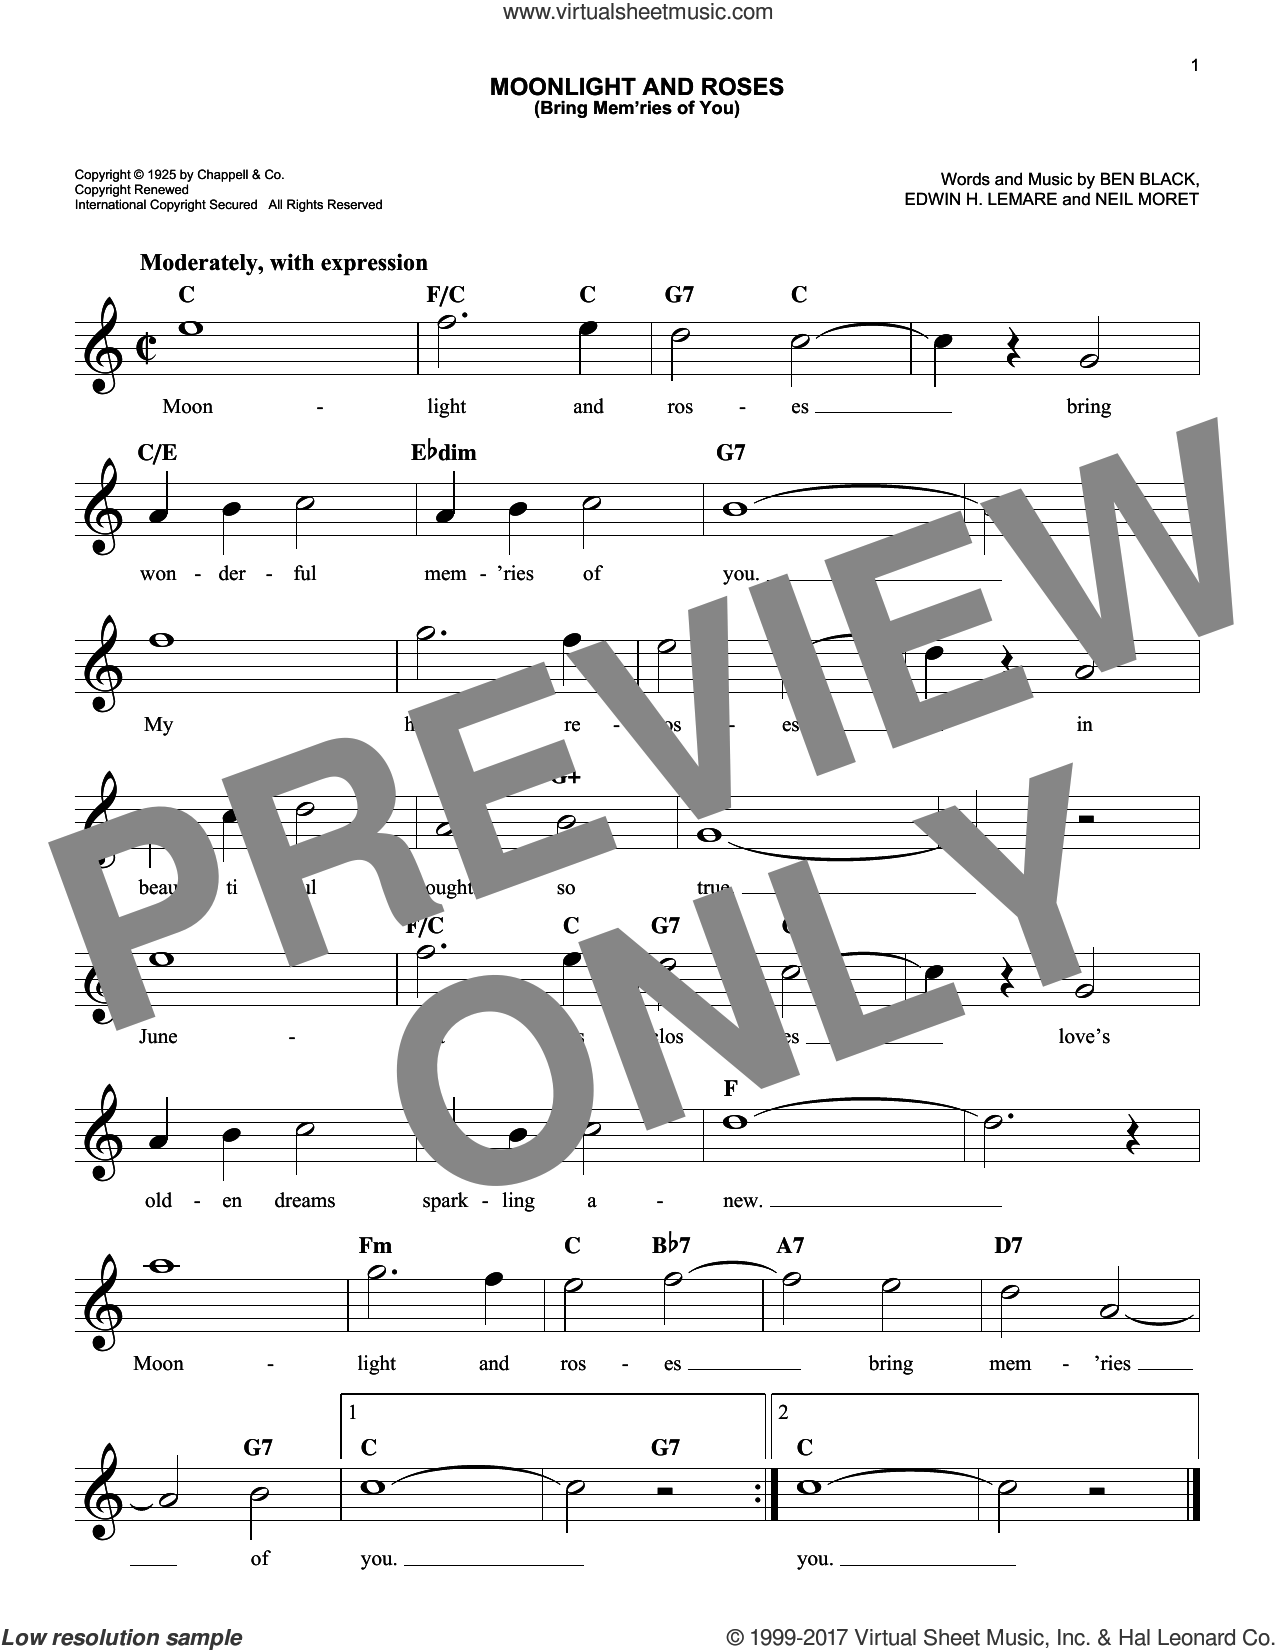 Moonlight And Roses (Bring Mem'ries Of You) sheet music for voice and other instruments (fake book) by Edwin Lemare, Ben Black and Neil Moret, intermediate skill level